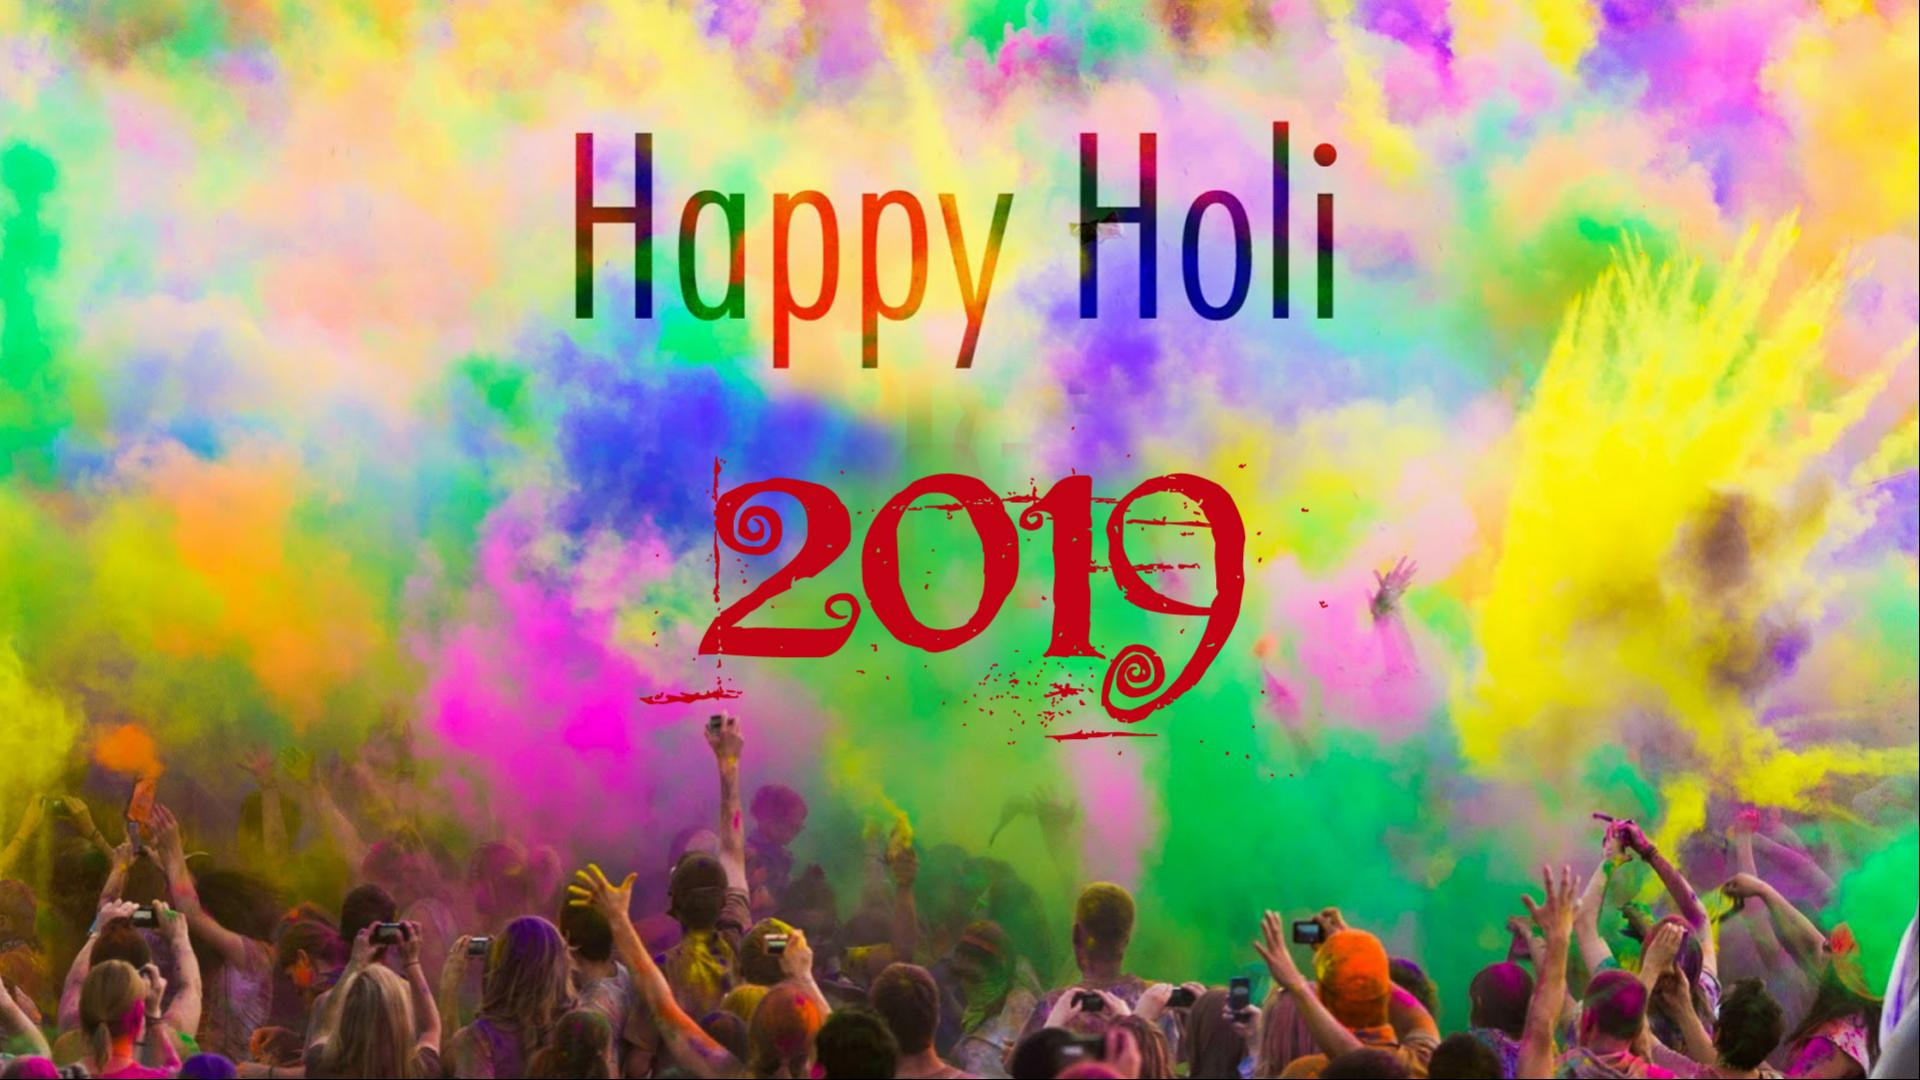 Simple Happy Holi Wallpaper For 2019 Hd Wallpapers Wallpapers